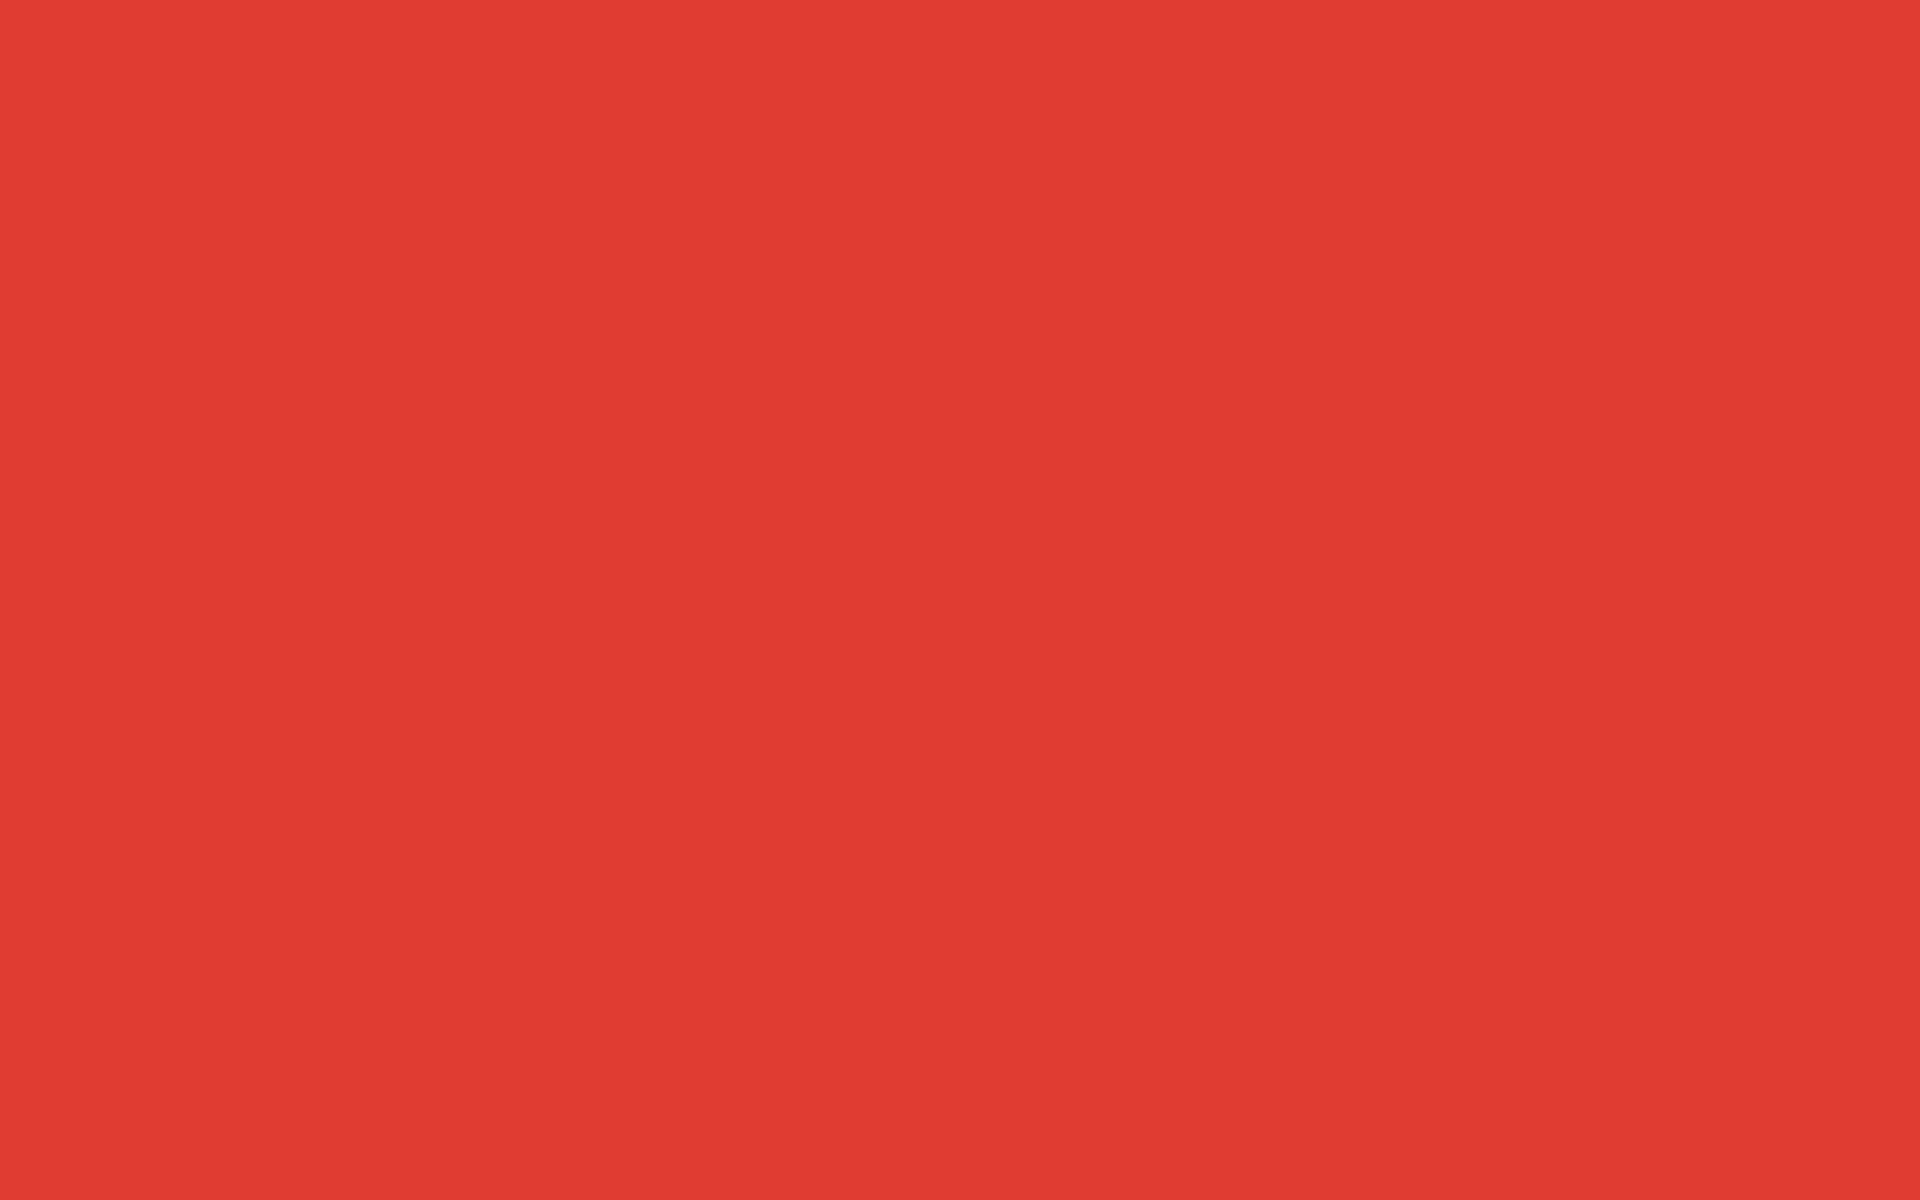 1920x1200 CG Red Solid Color Background